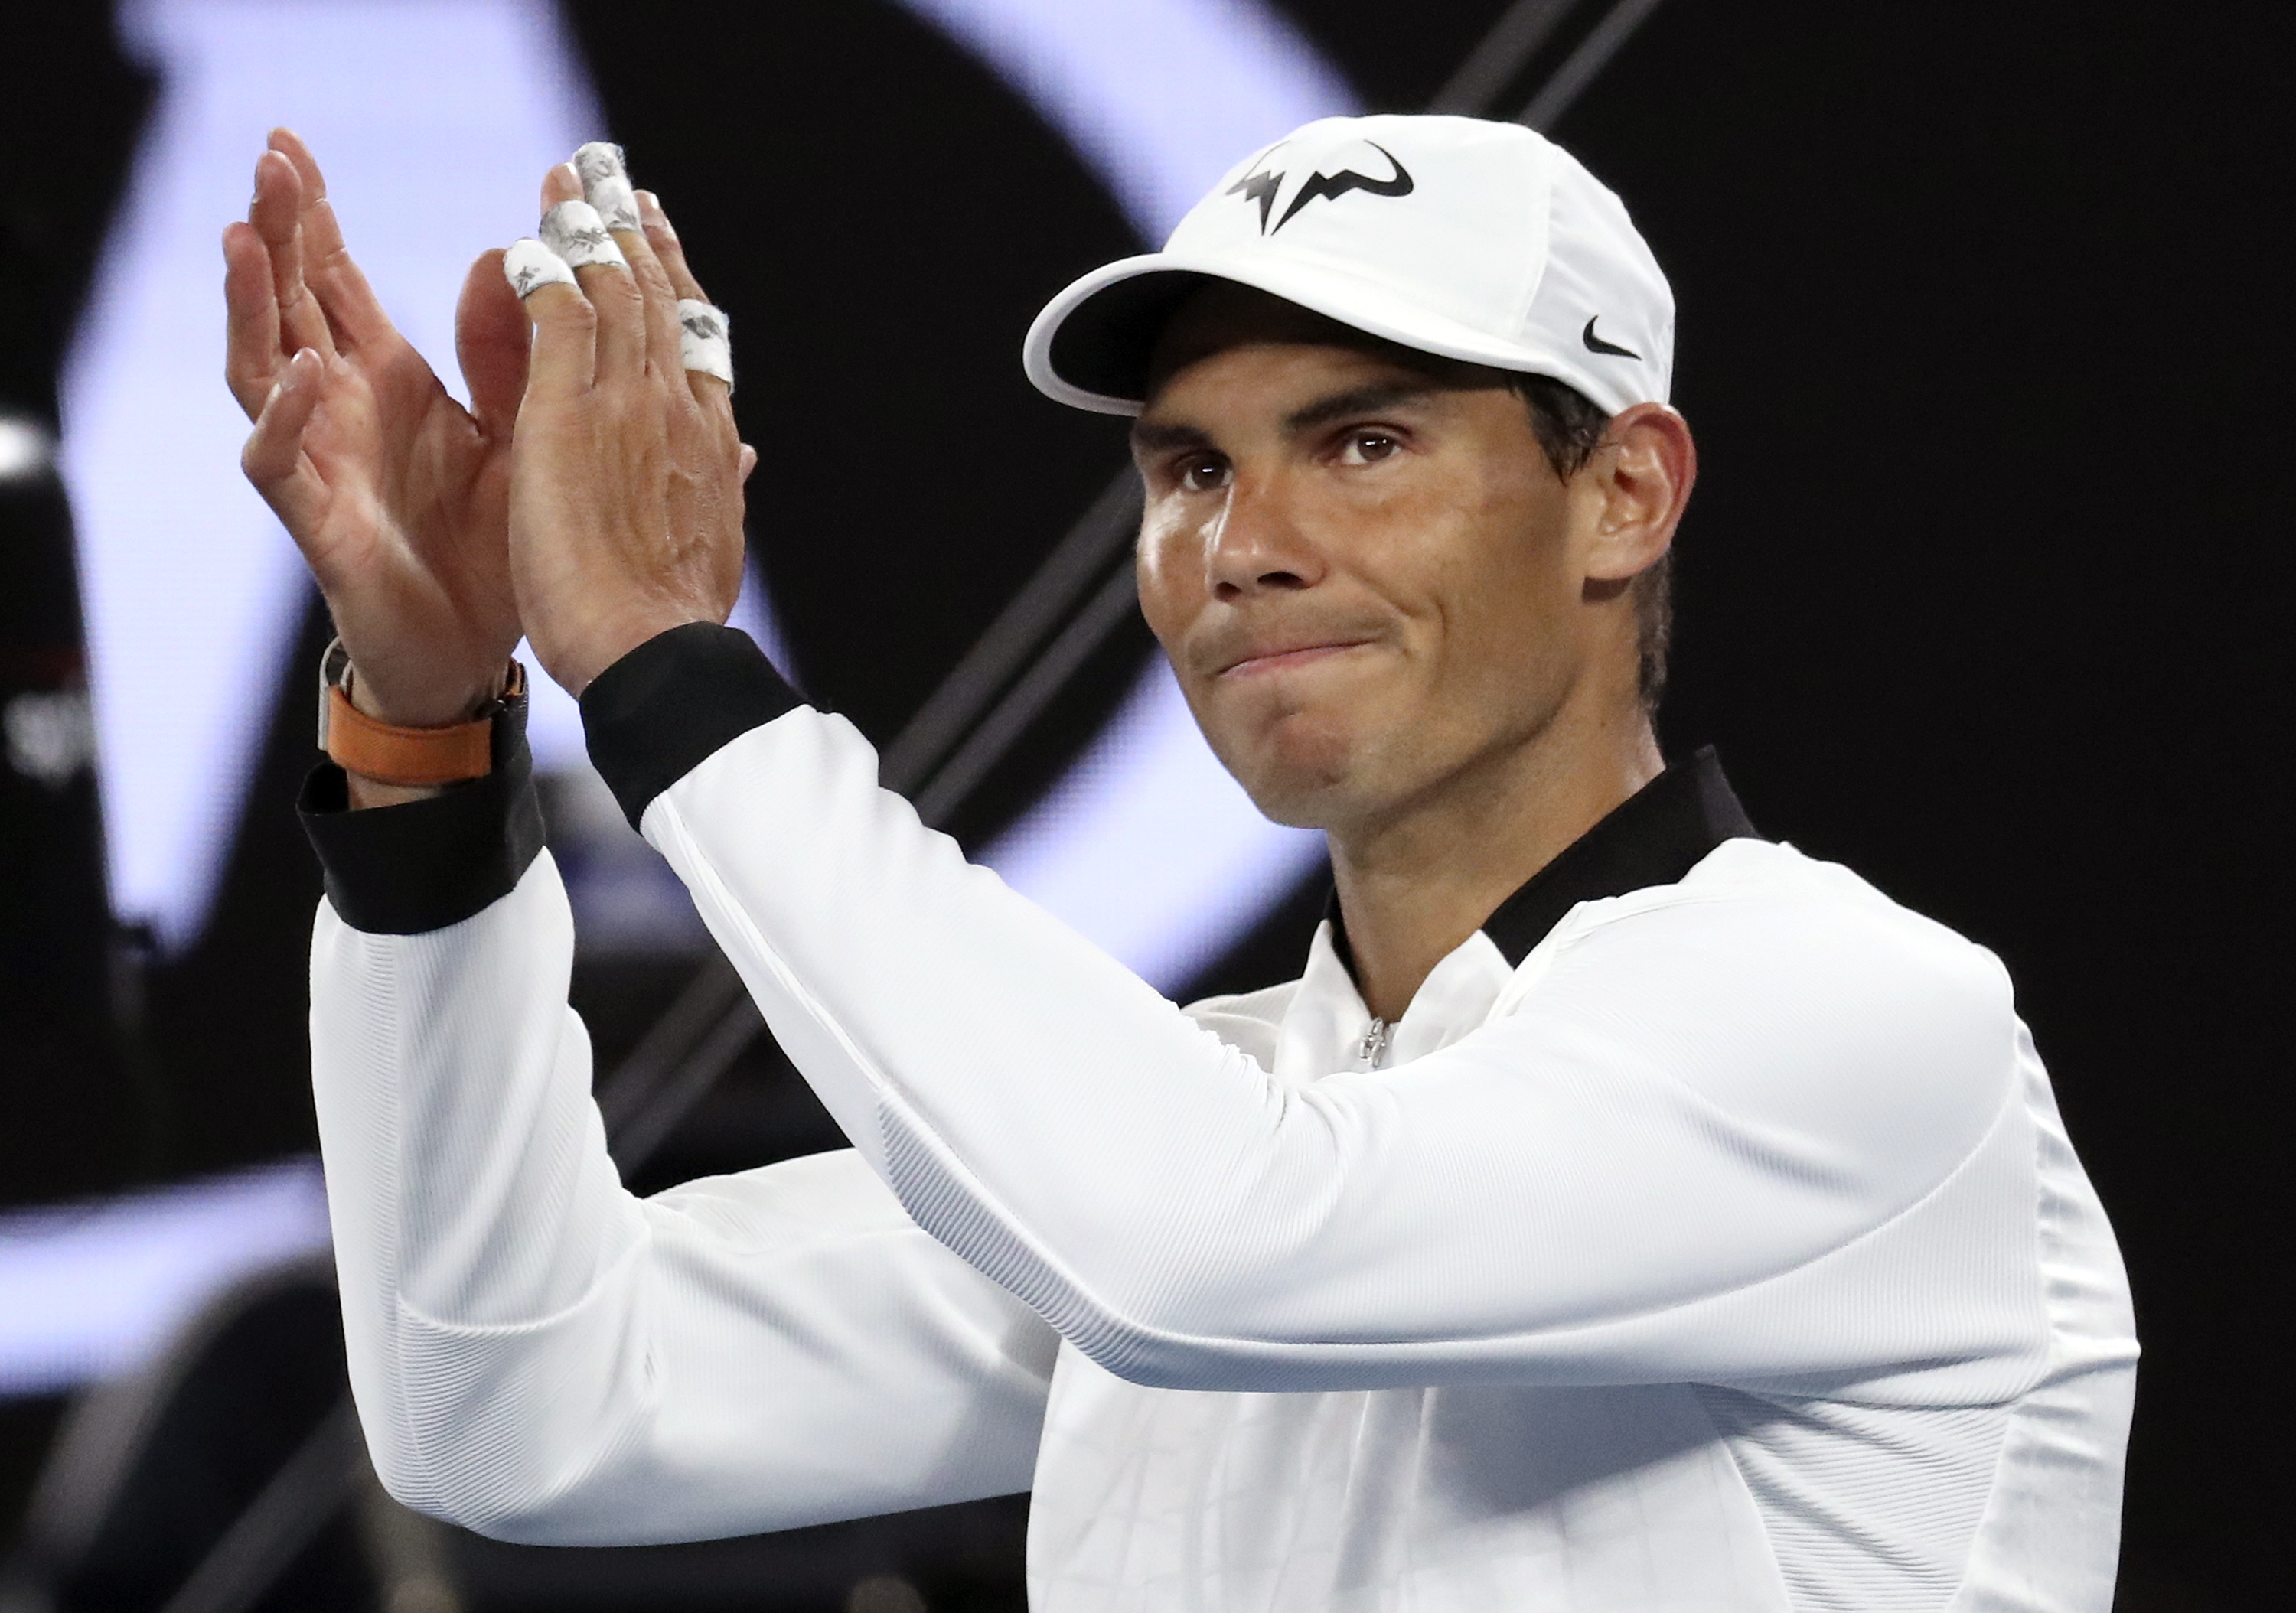 Spain's Rafael Nadal celebrates after defeating Canada's Milos Raonic during their quarterfinal at the Australian Open tennis championships in Melbourne, Australia, Wednesday, Jan. 25, 2017. (AP Photo/Aaron Favila)